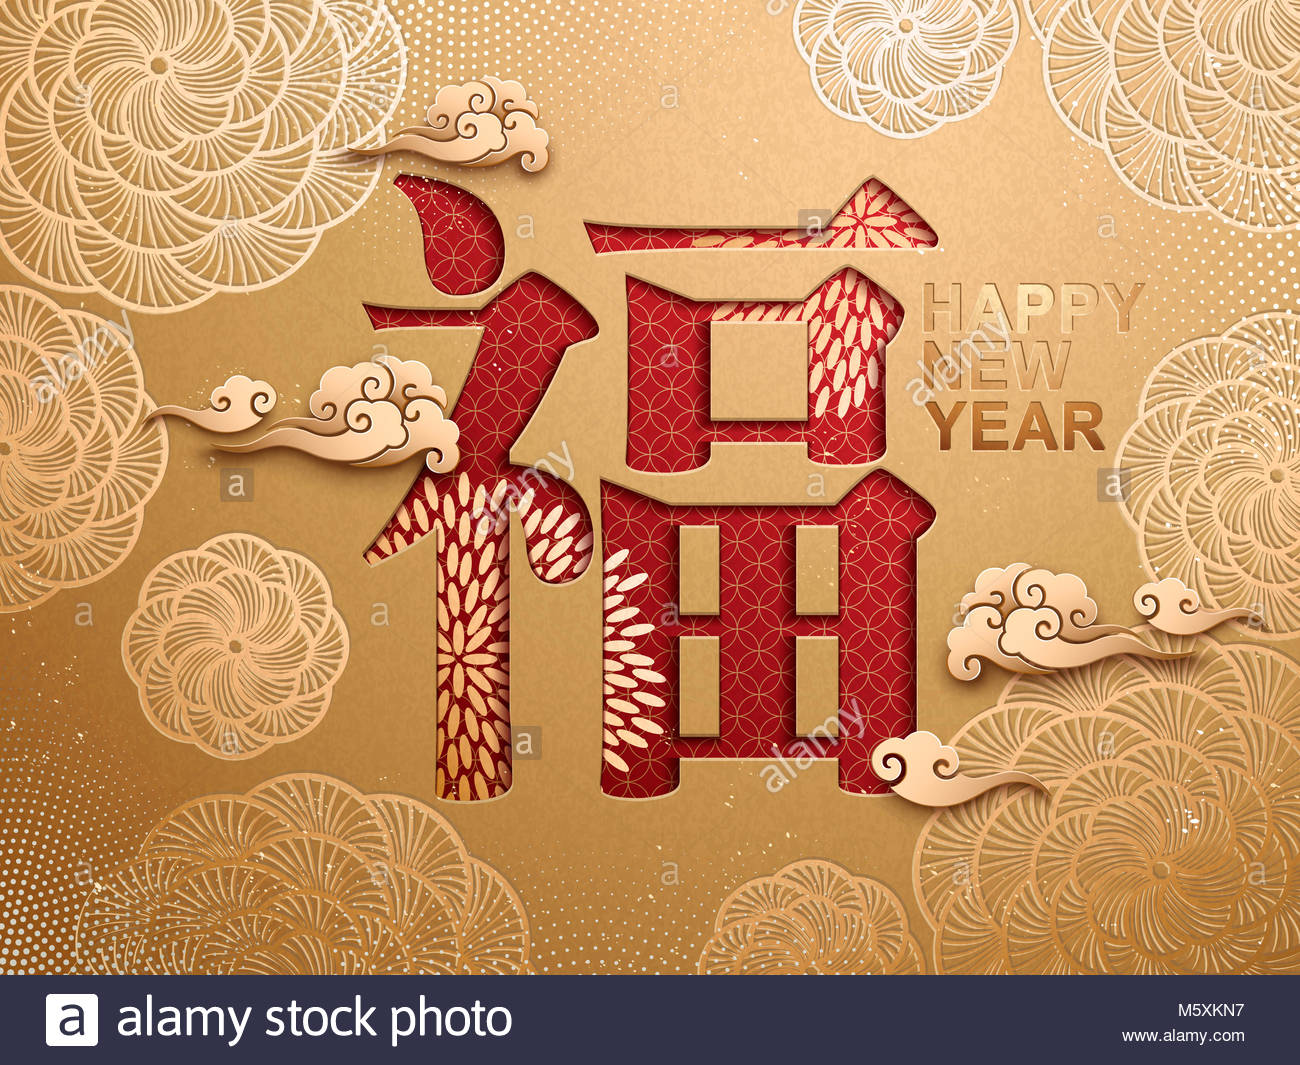 2017 Chinese New Year Words Good Fortune In The Middle Surrounded By Floral Pattern Isolated On Golden Background